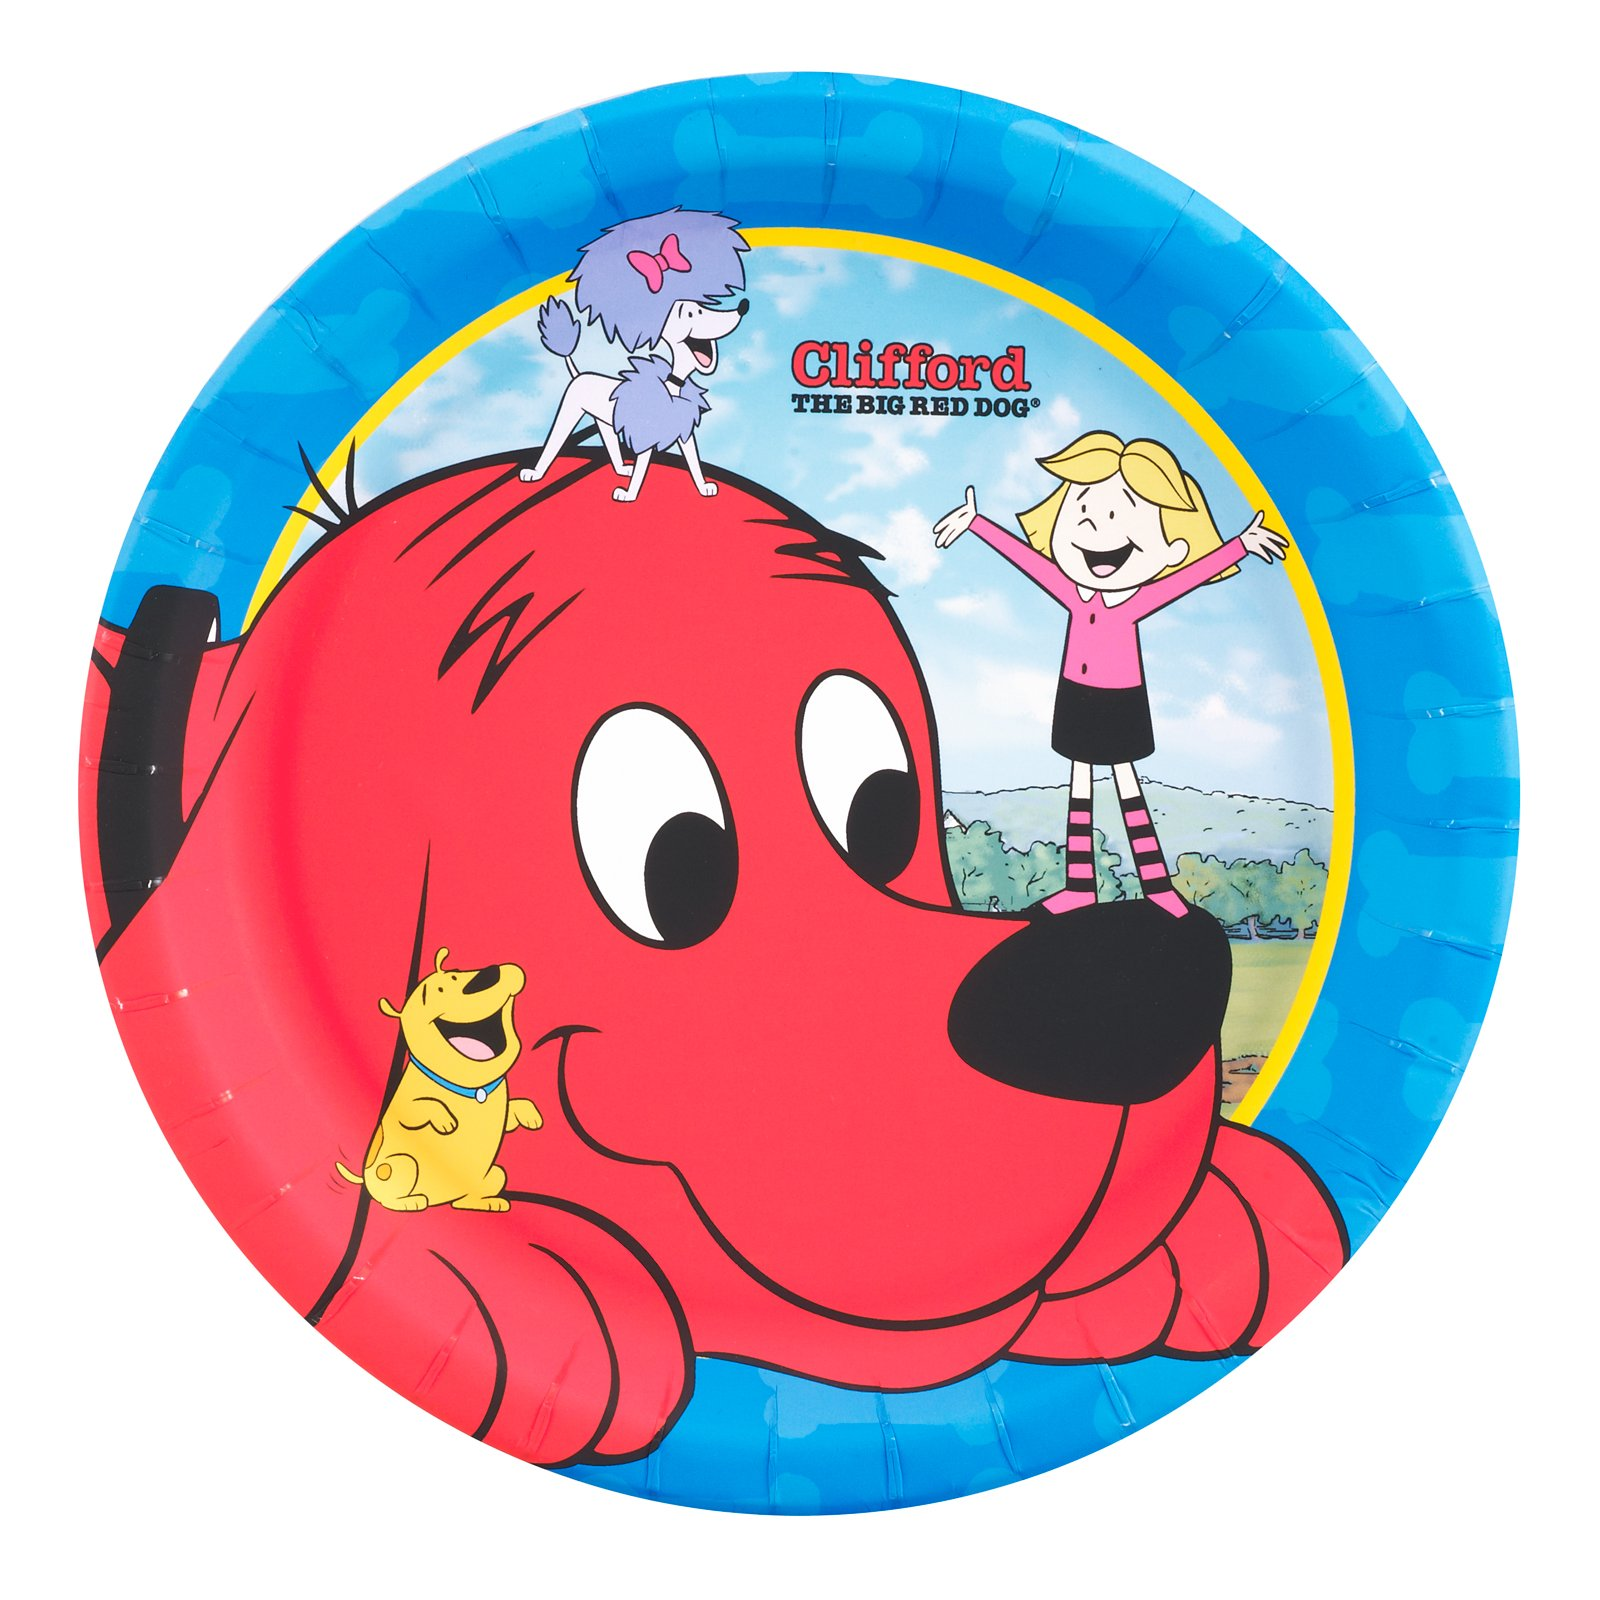 Birthdayexpress Brings Clifford The Big Red Dog R To